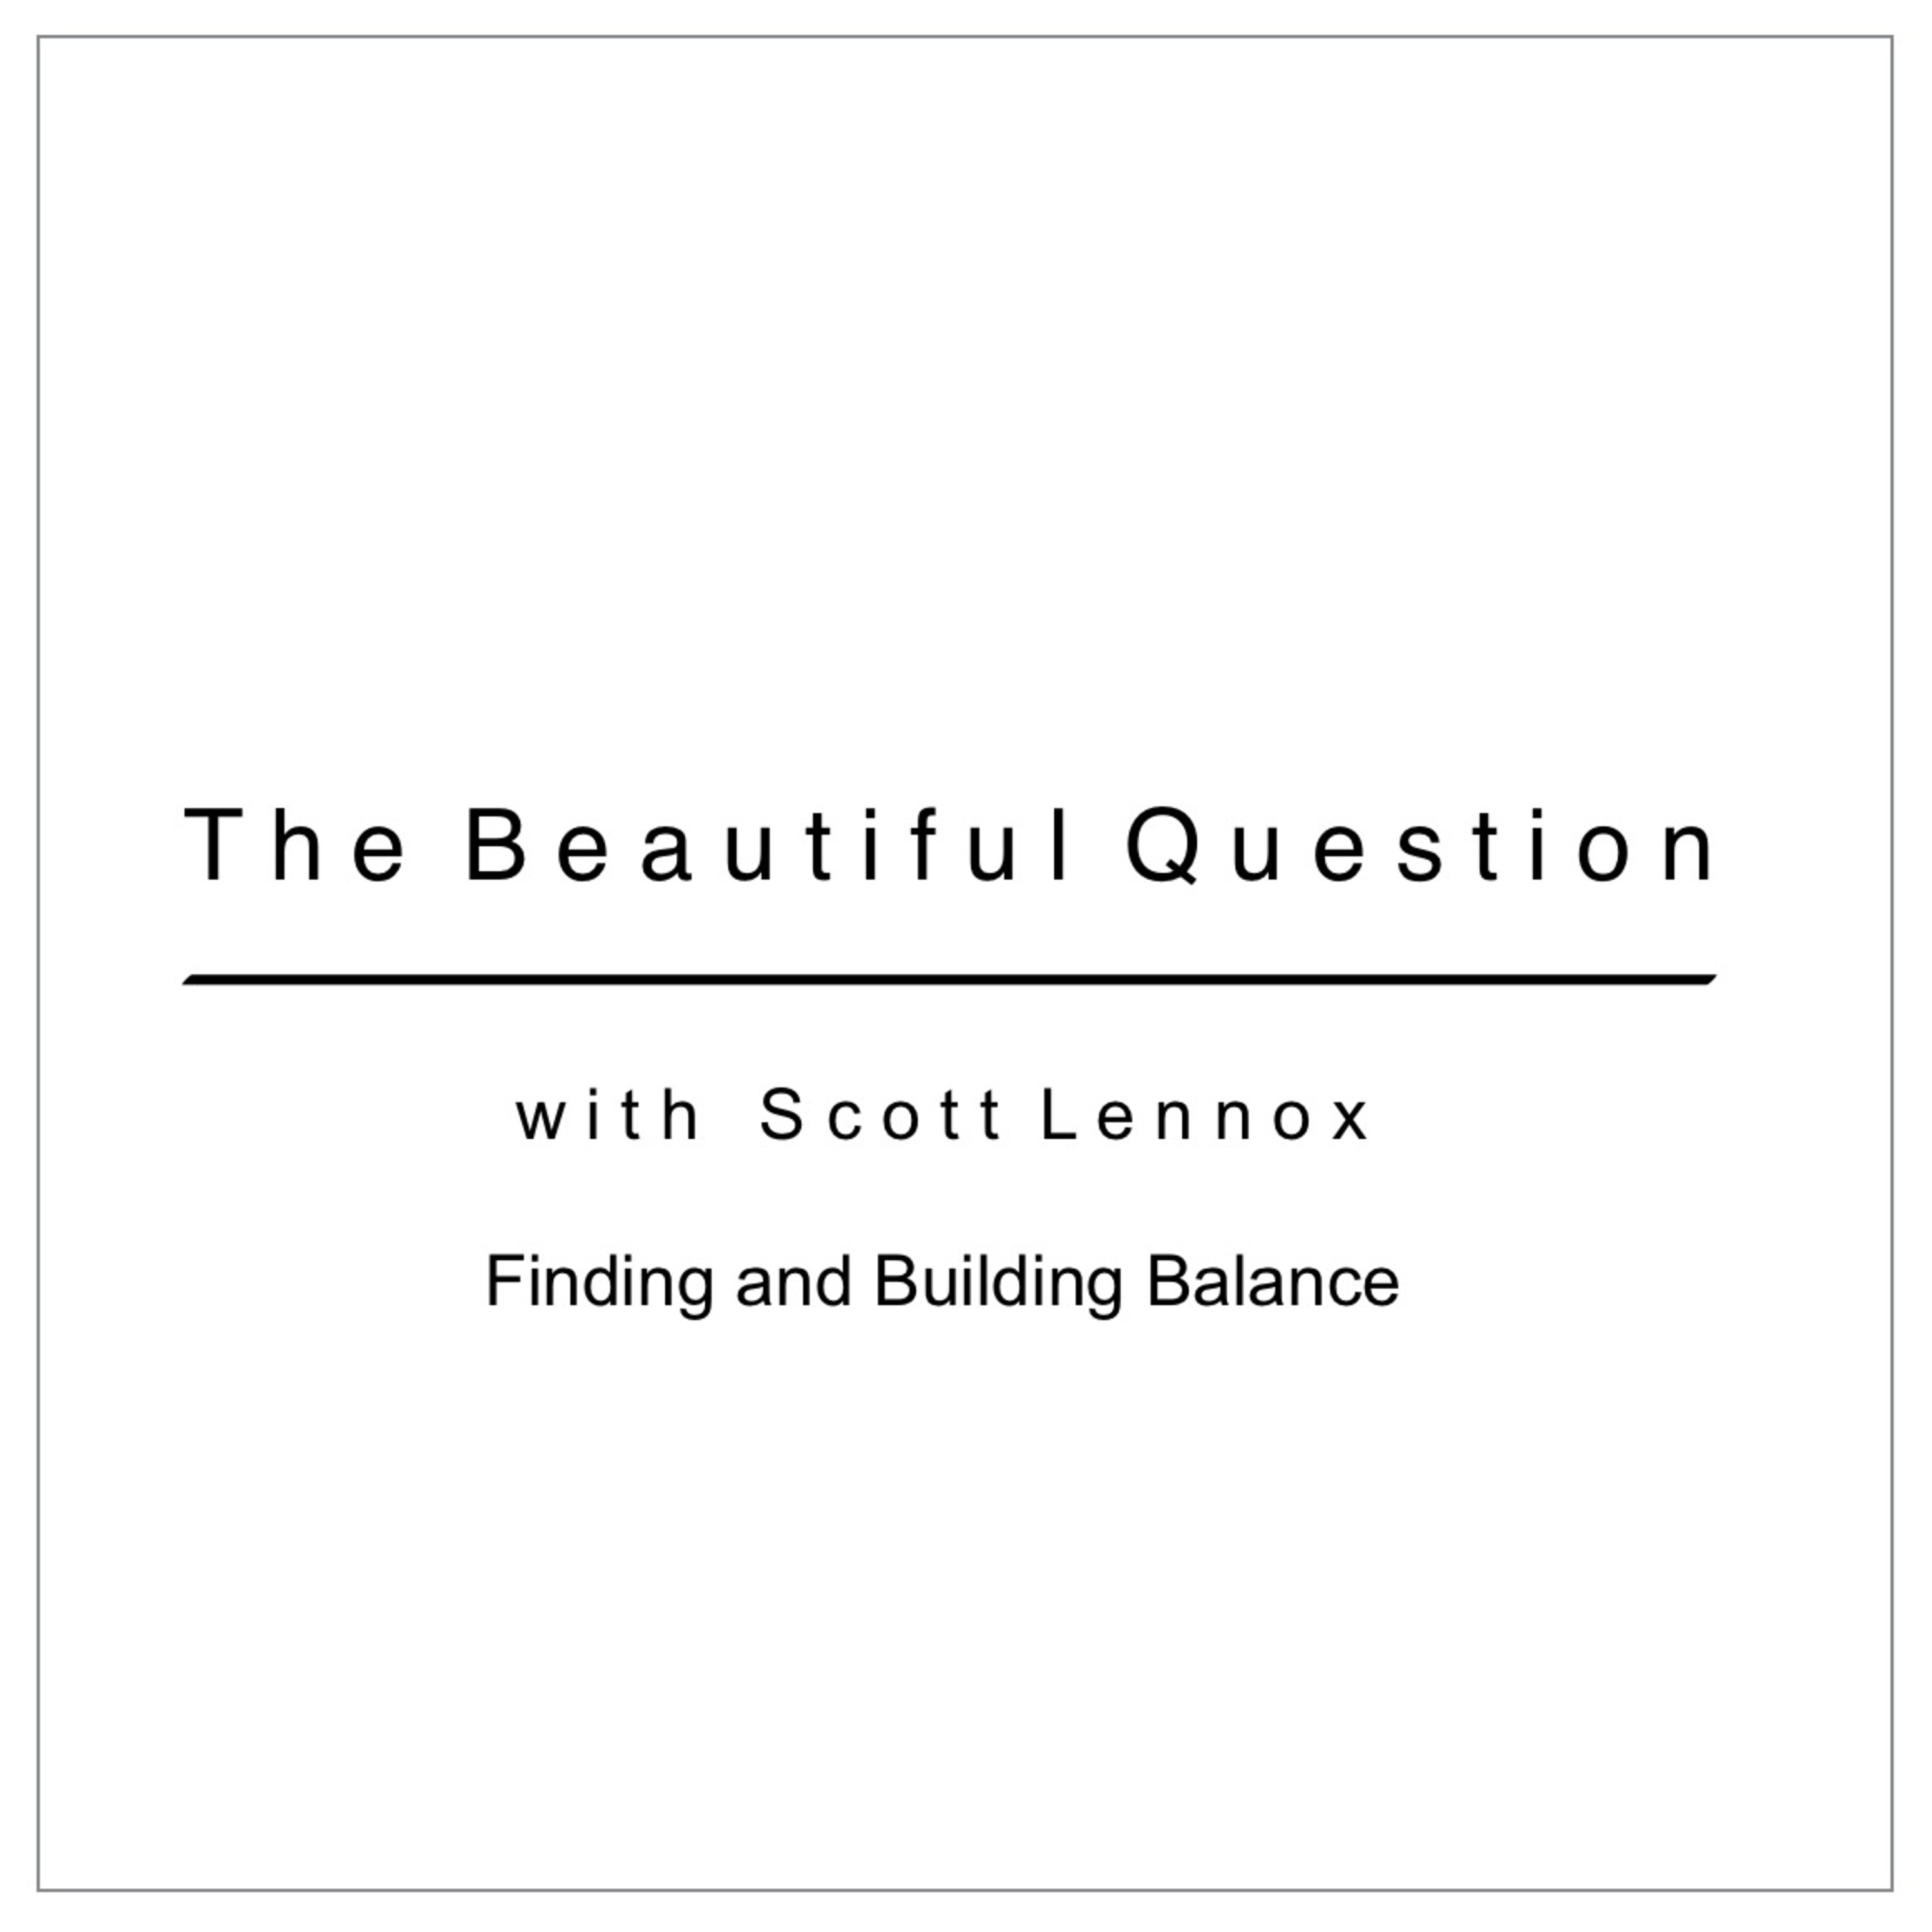 Finding and Building Balance